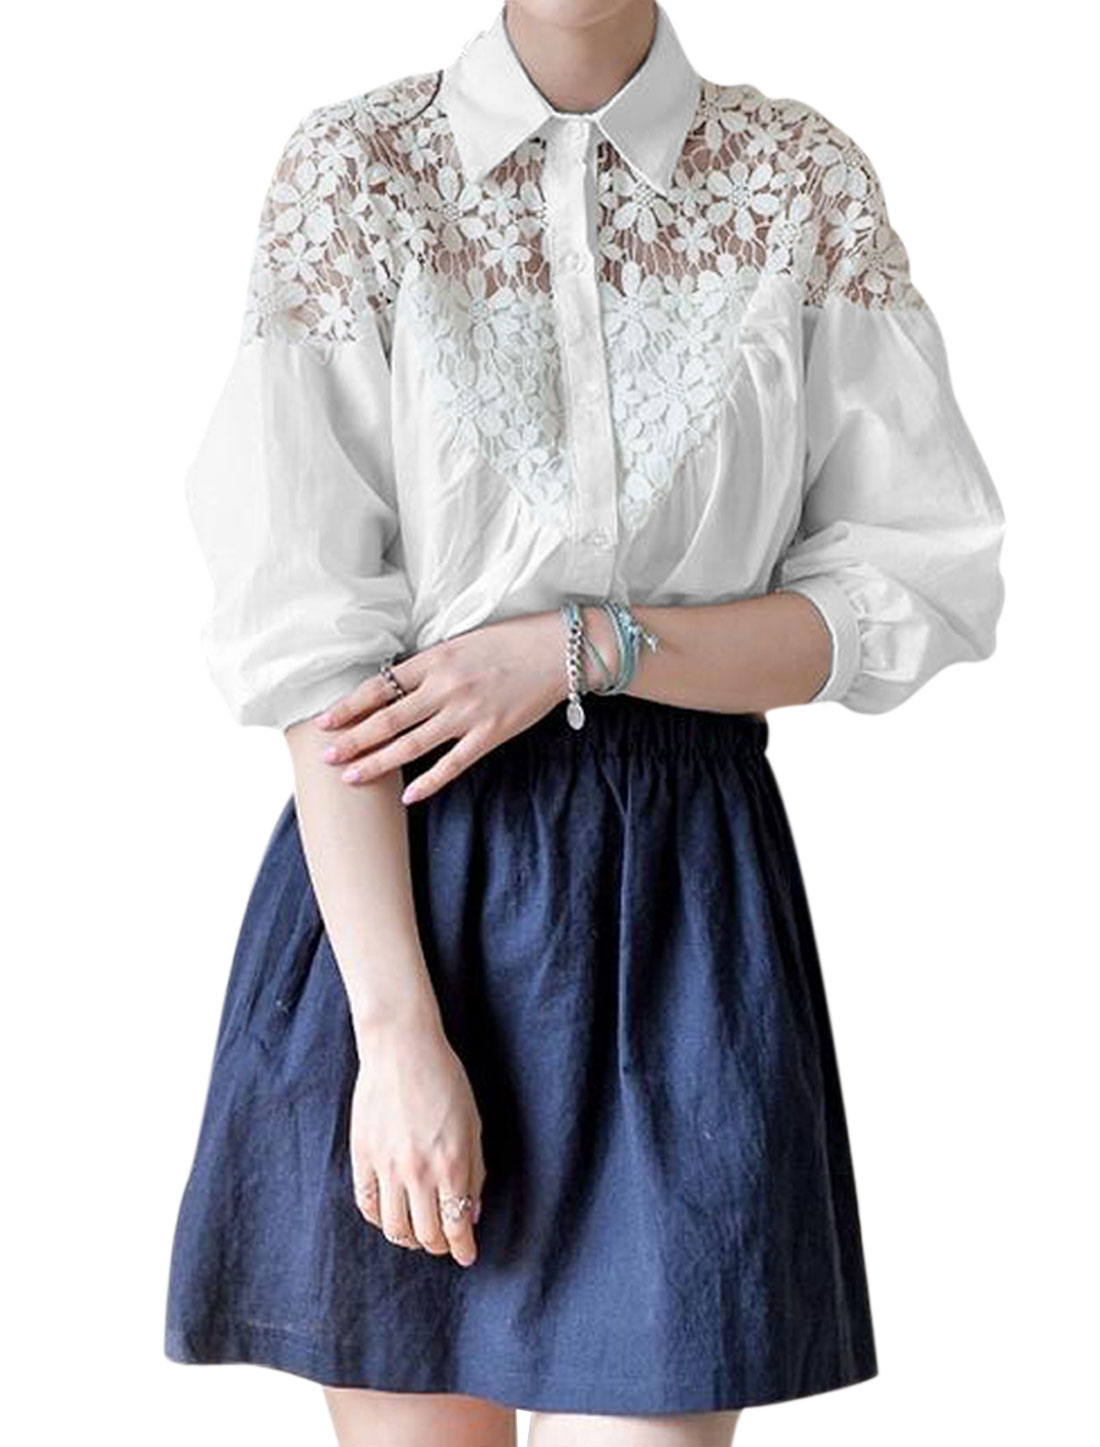 Lady 3/4 Batwing Sleeve Button Up Flower Crochet Panel Loose Shirt White S